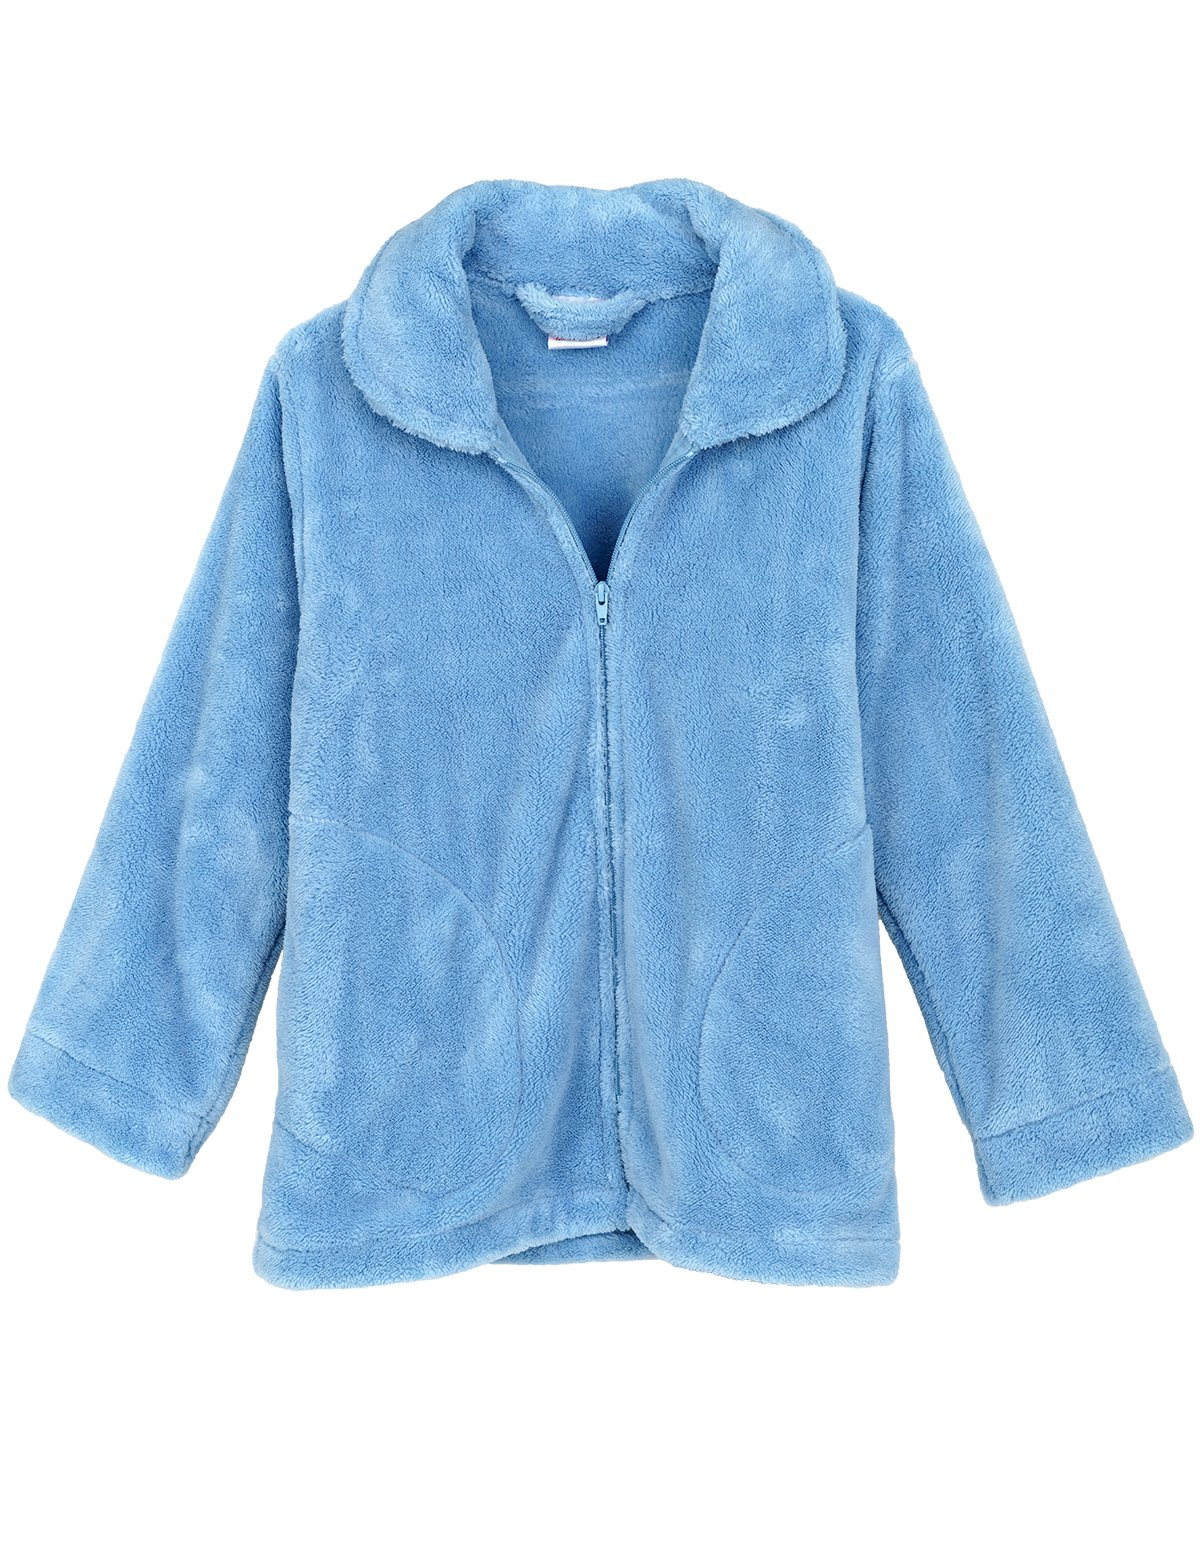 TowelSelections Women's Bed Jacket Zip Front Cardigan Fleece Robe Lounge Coverup Medium Blue Bell by TowelSelections